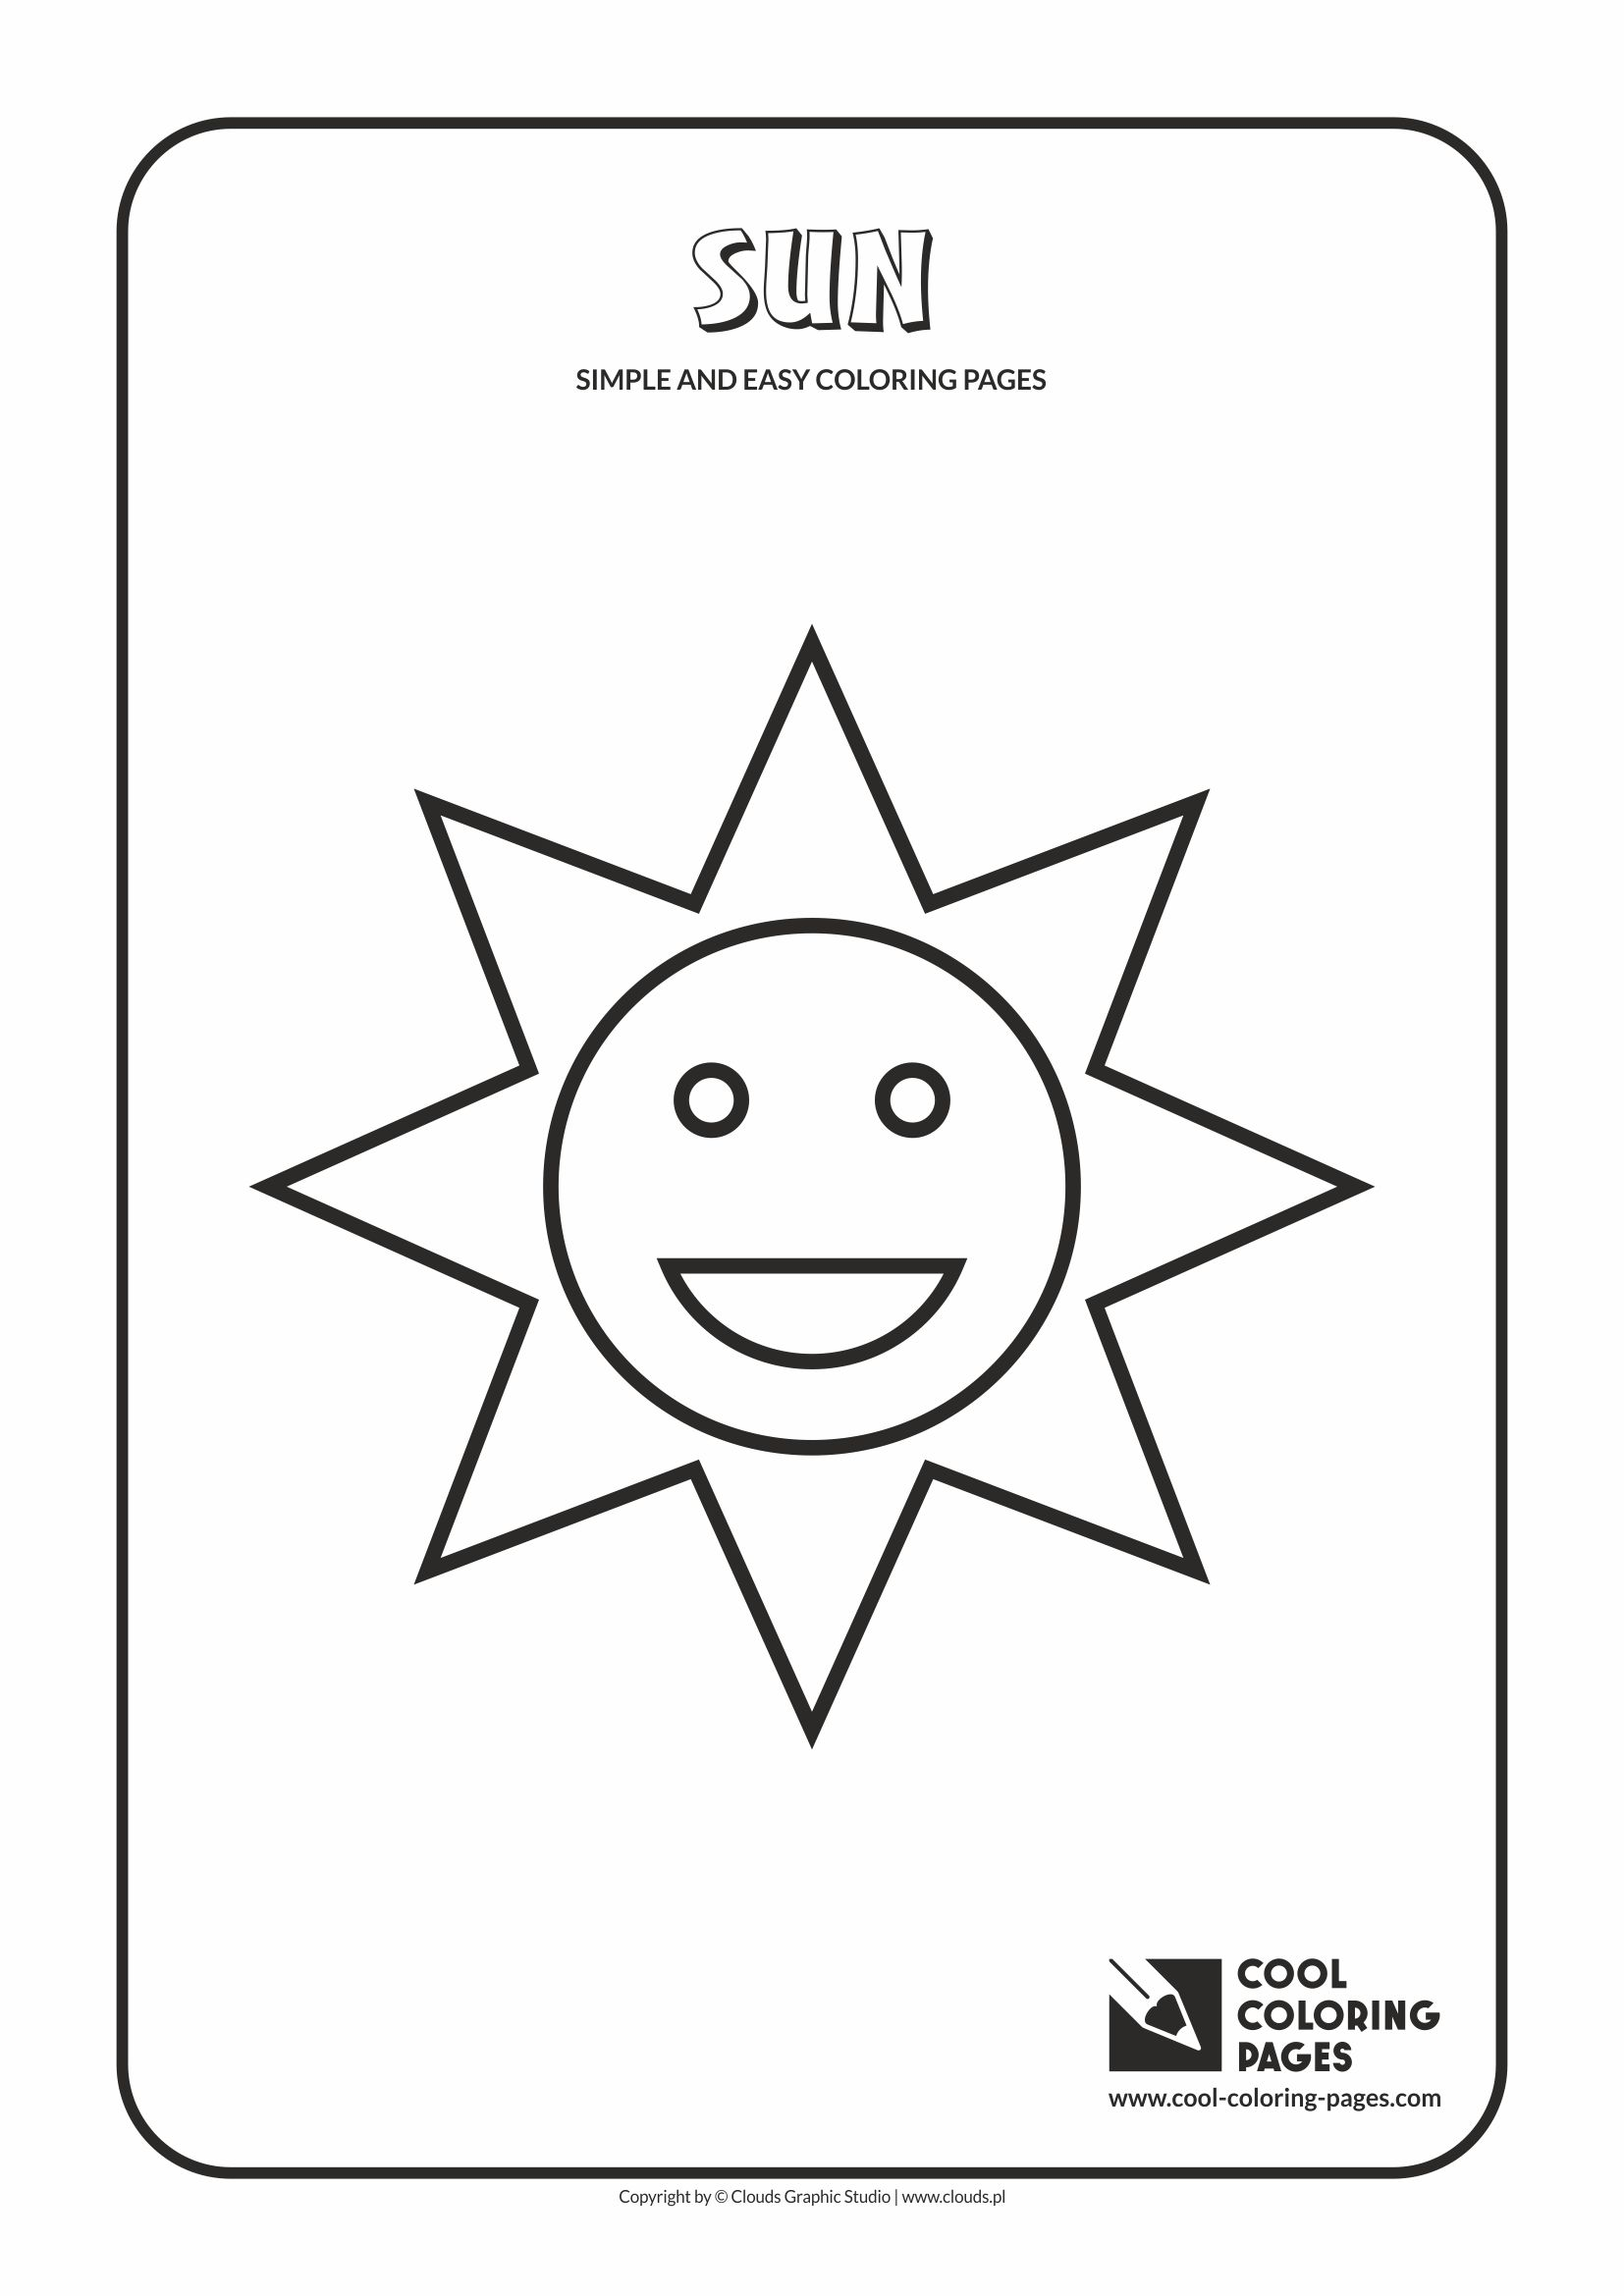 Cool Coloring Pages Simple and easy coloring pages - Sun - Cool ...